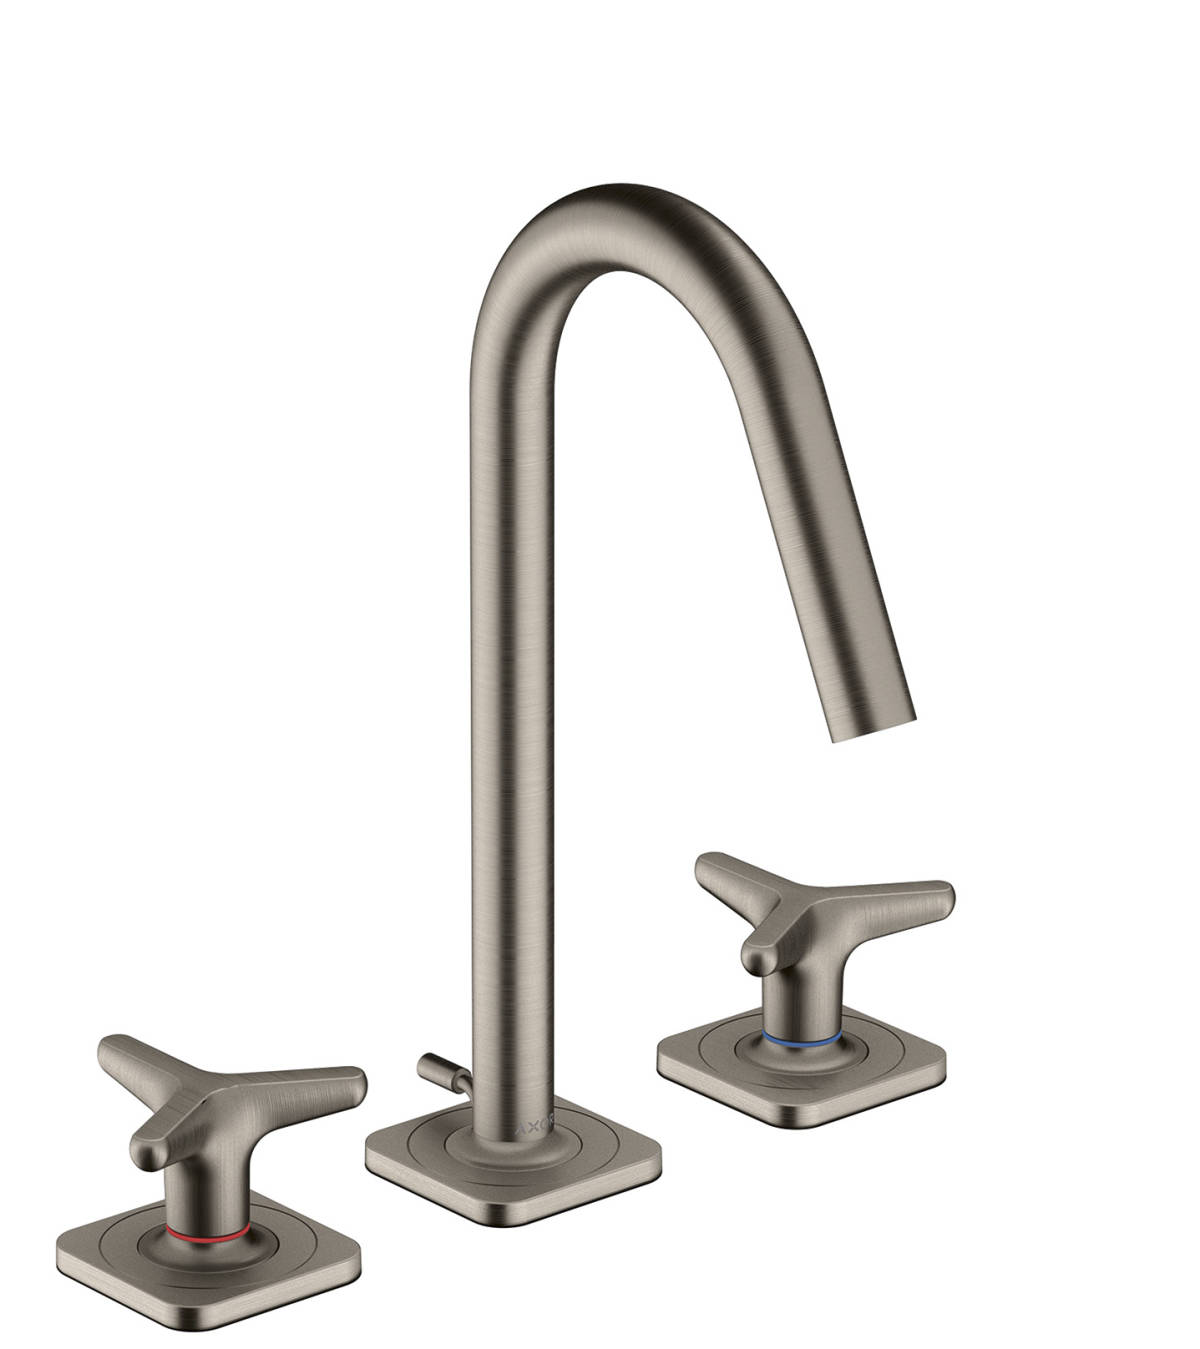 3-hole basin mixer 160 with star handles, escutcheons and pop-up waste set, Stainless Steel Optic, 34135800